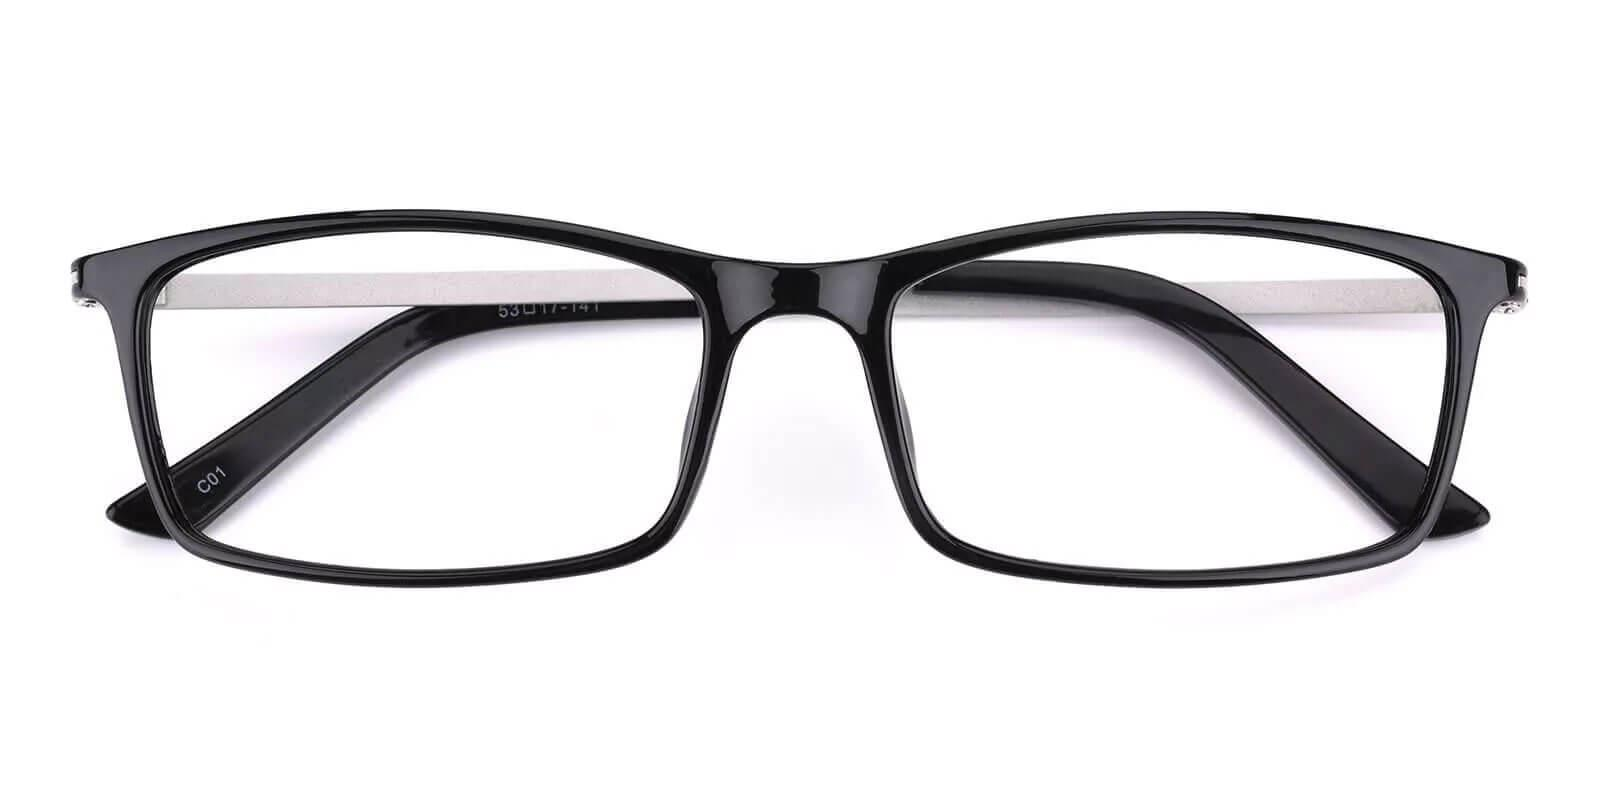 Quapaw Black TR Eyeglasses , Lightweight , UniversalBridgeFit Frames from ABBE Glasses